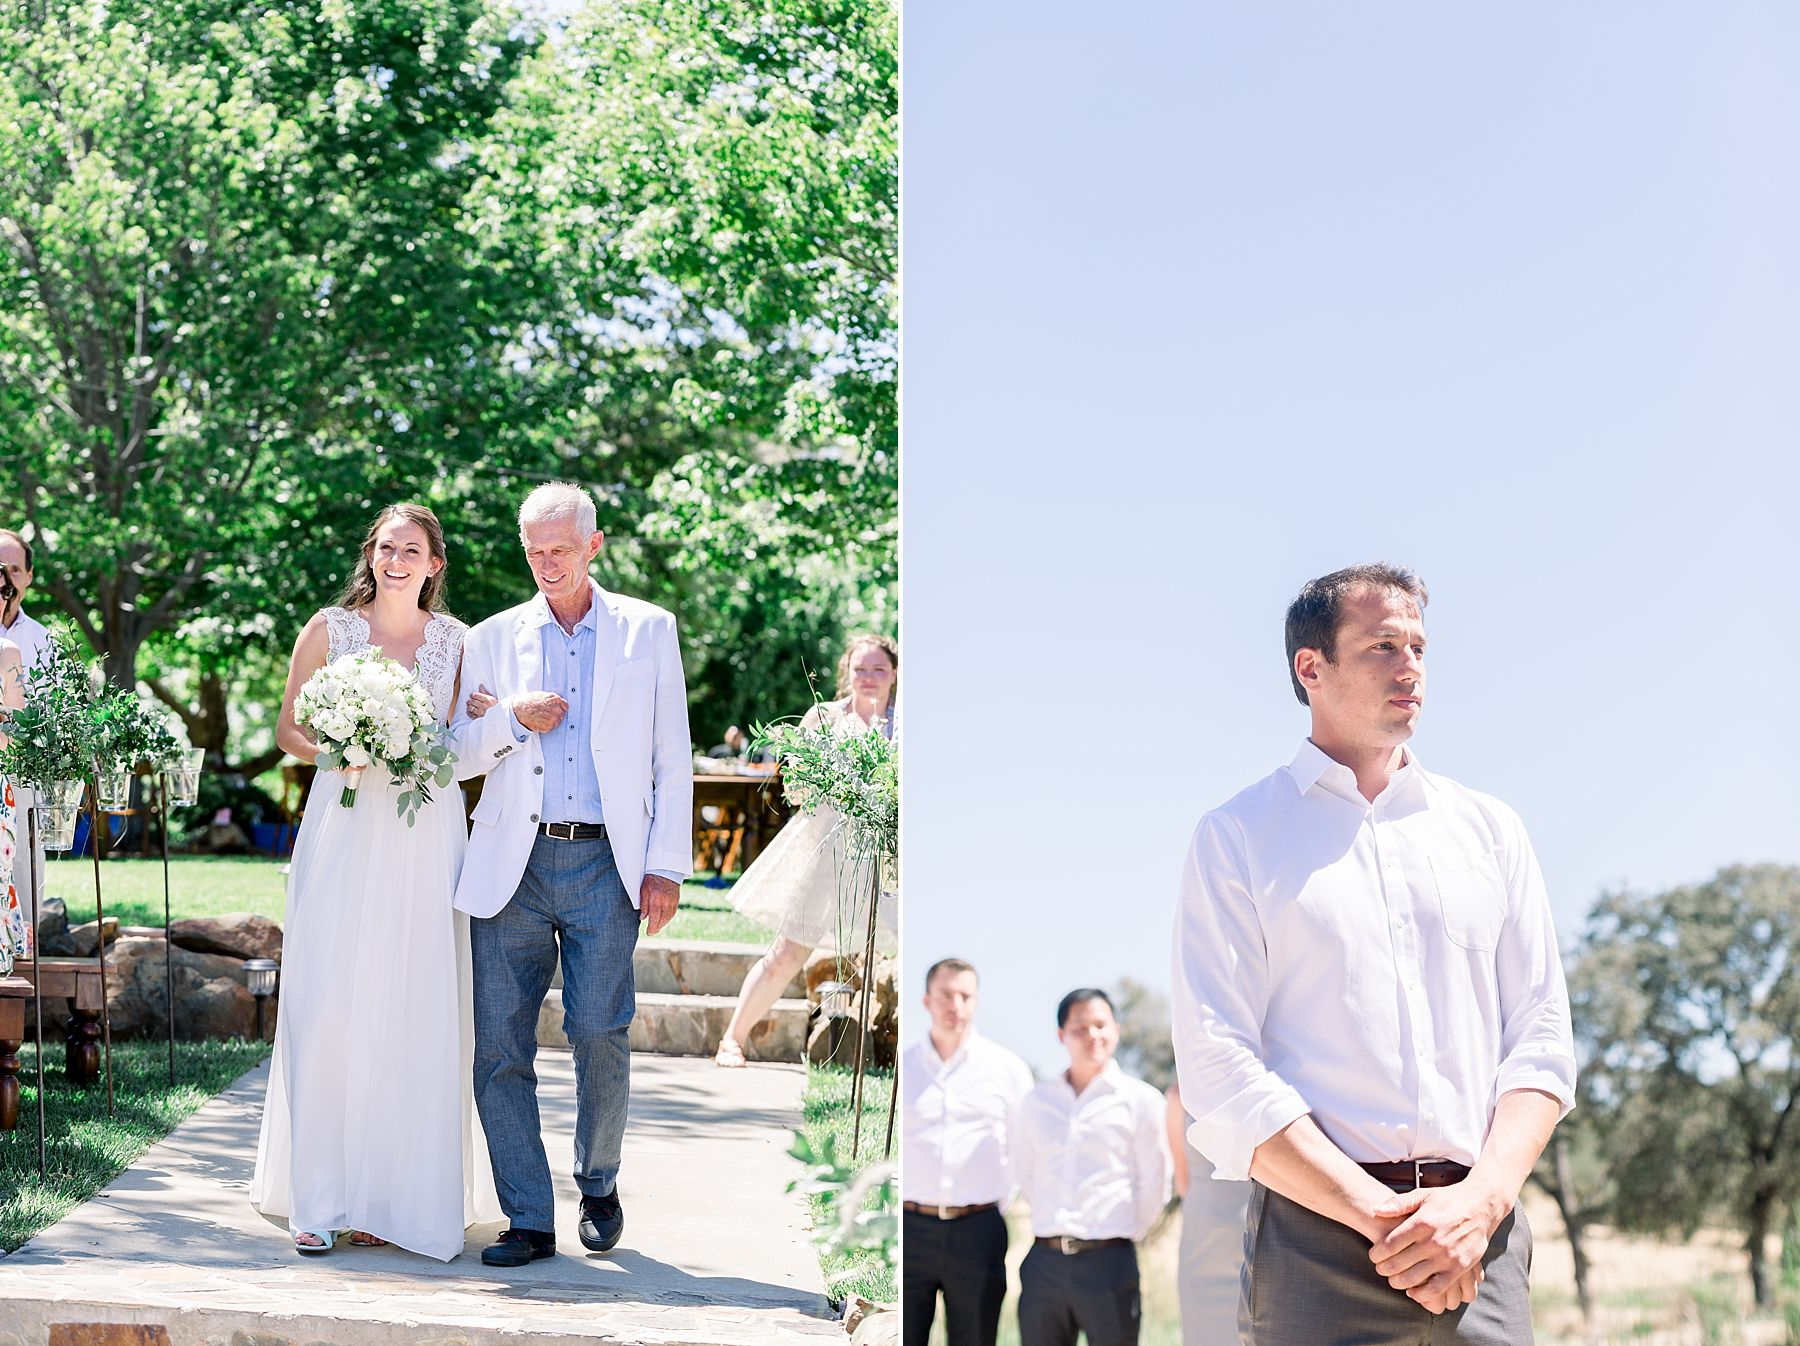 River Highlands Ranch Wedding - Brittany and Mike - Ashley Baumgartner - Sacramento Wedding Photographer_0027.jpg